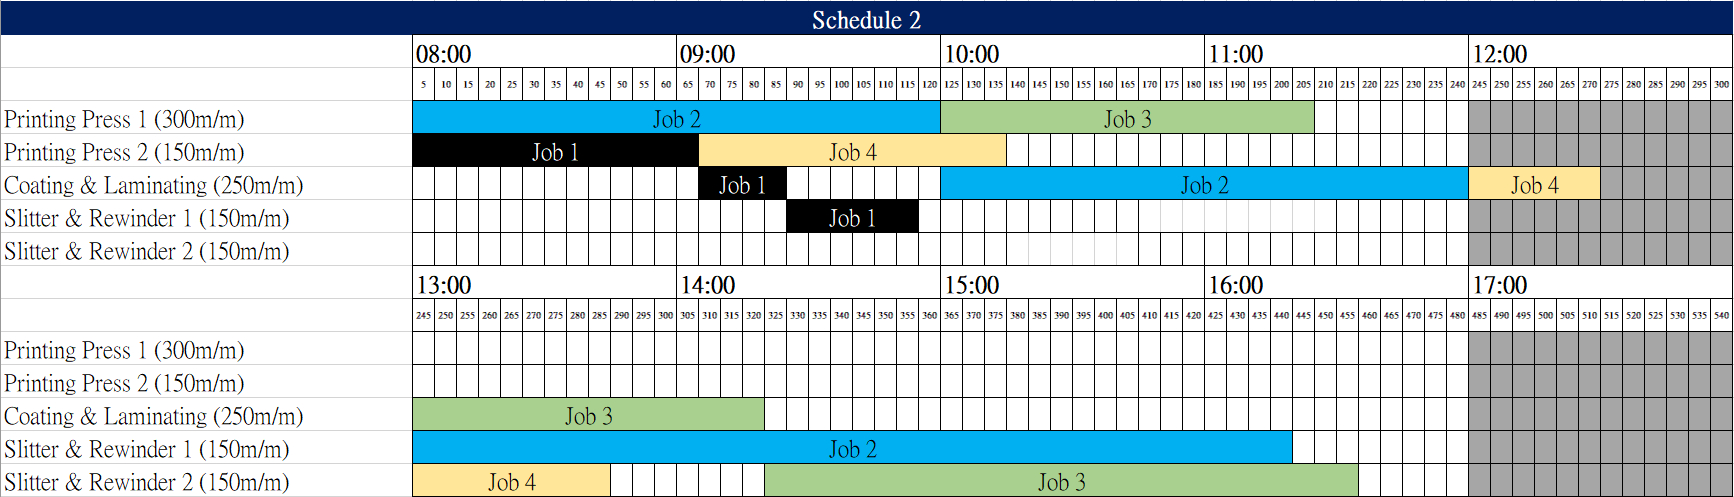 proimages/blog/production_schedule_2.jpg